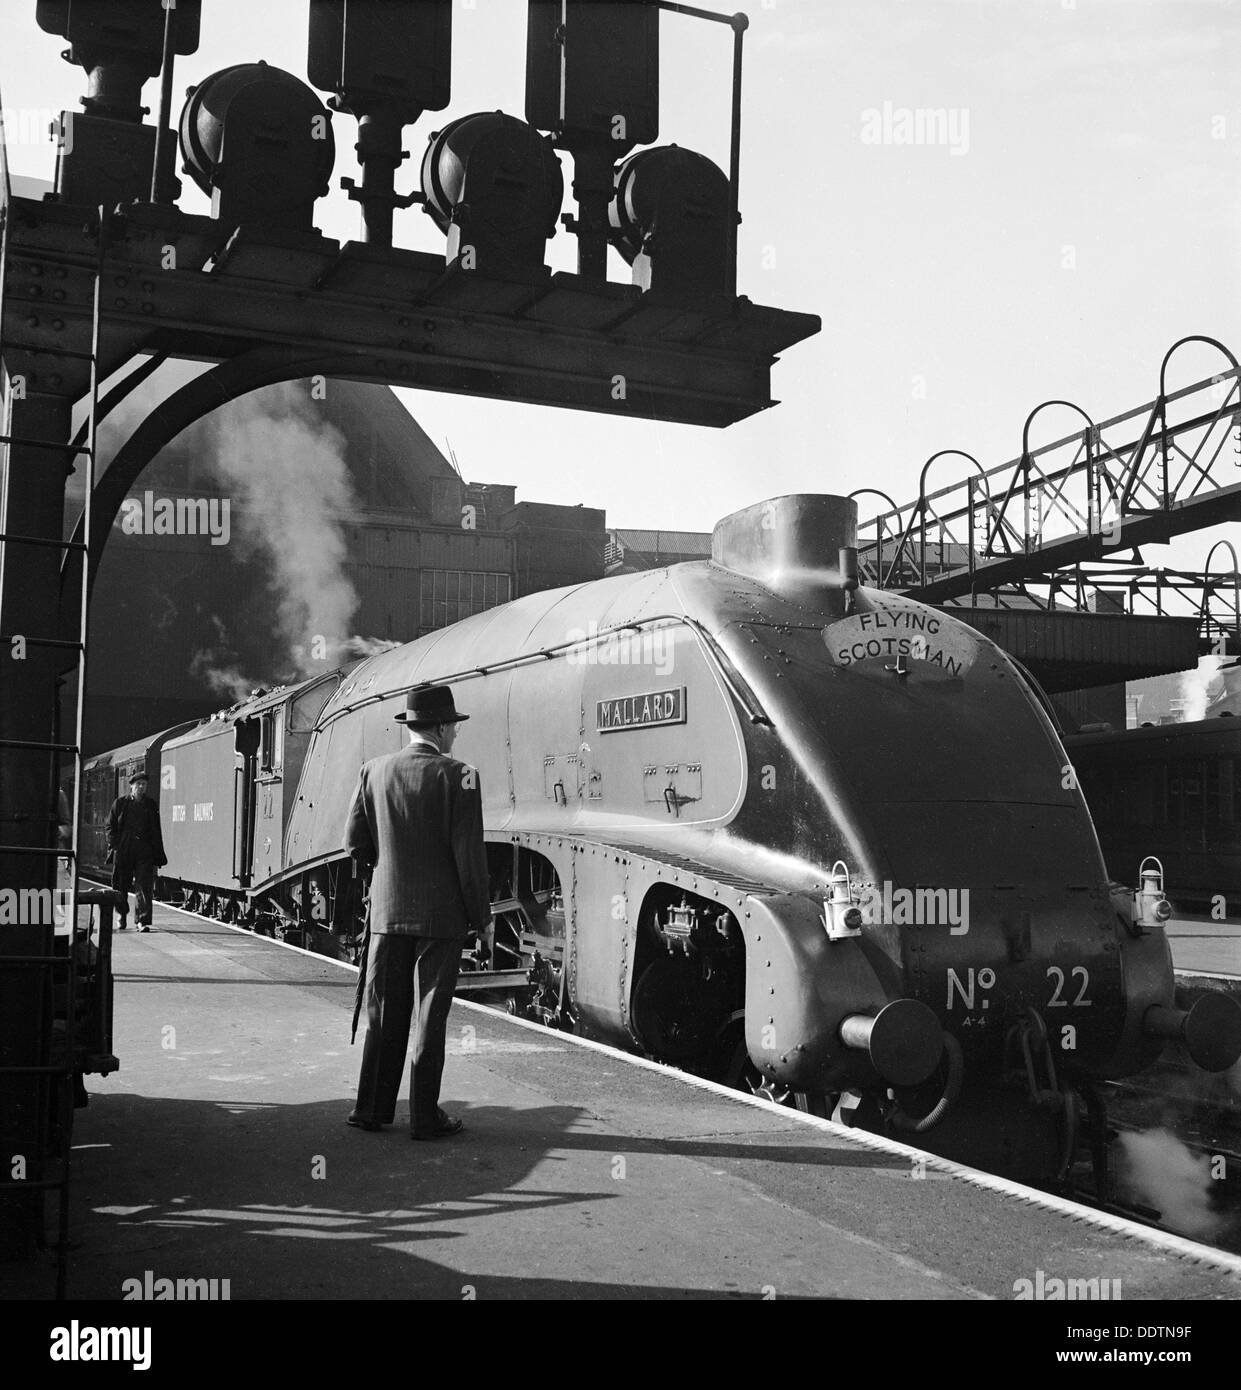 The 'Flying Scotsman', King's Cross Station, London, 1948. Artist: John Gay - Stock Image